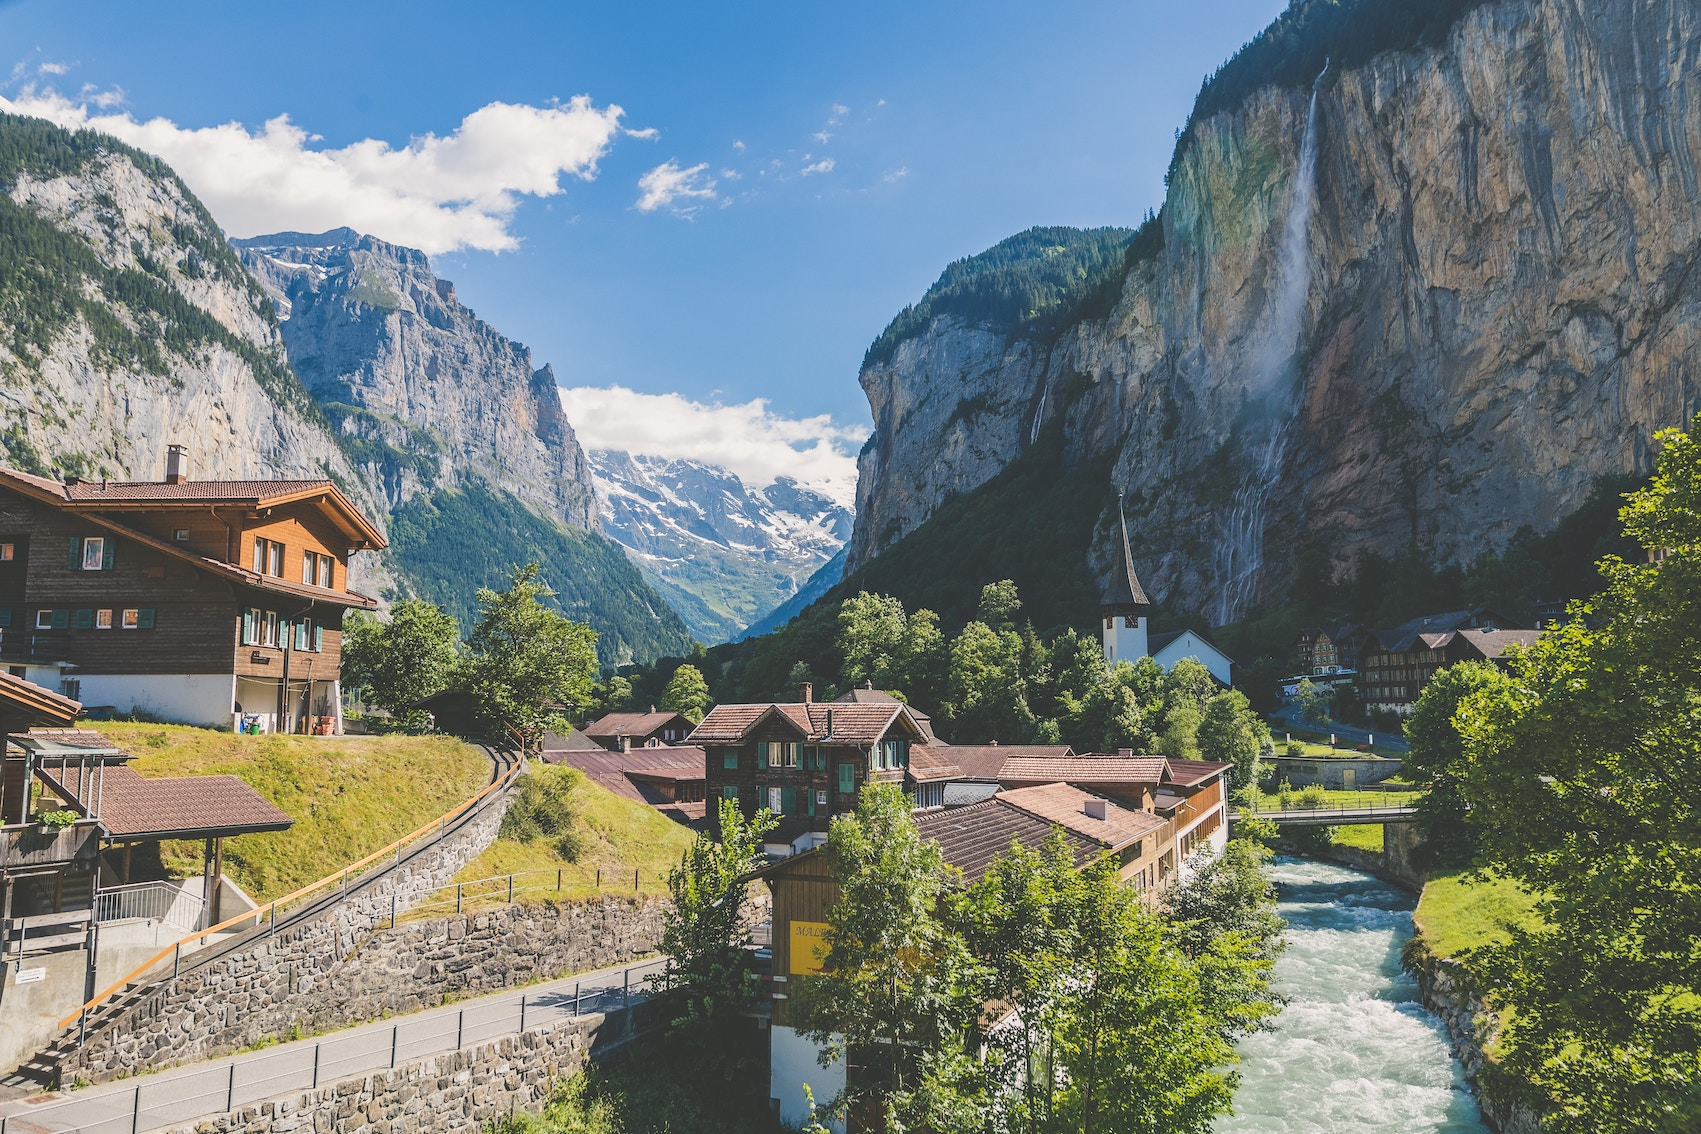 Camping Places In Switzerland – Incredible Mountain Experience